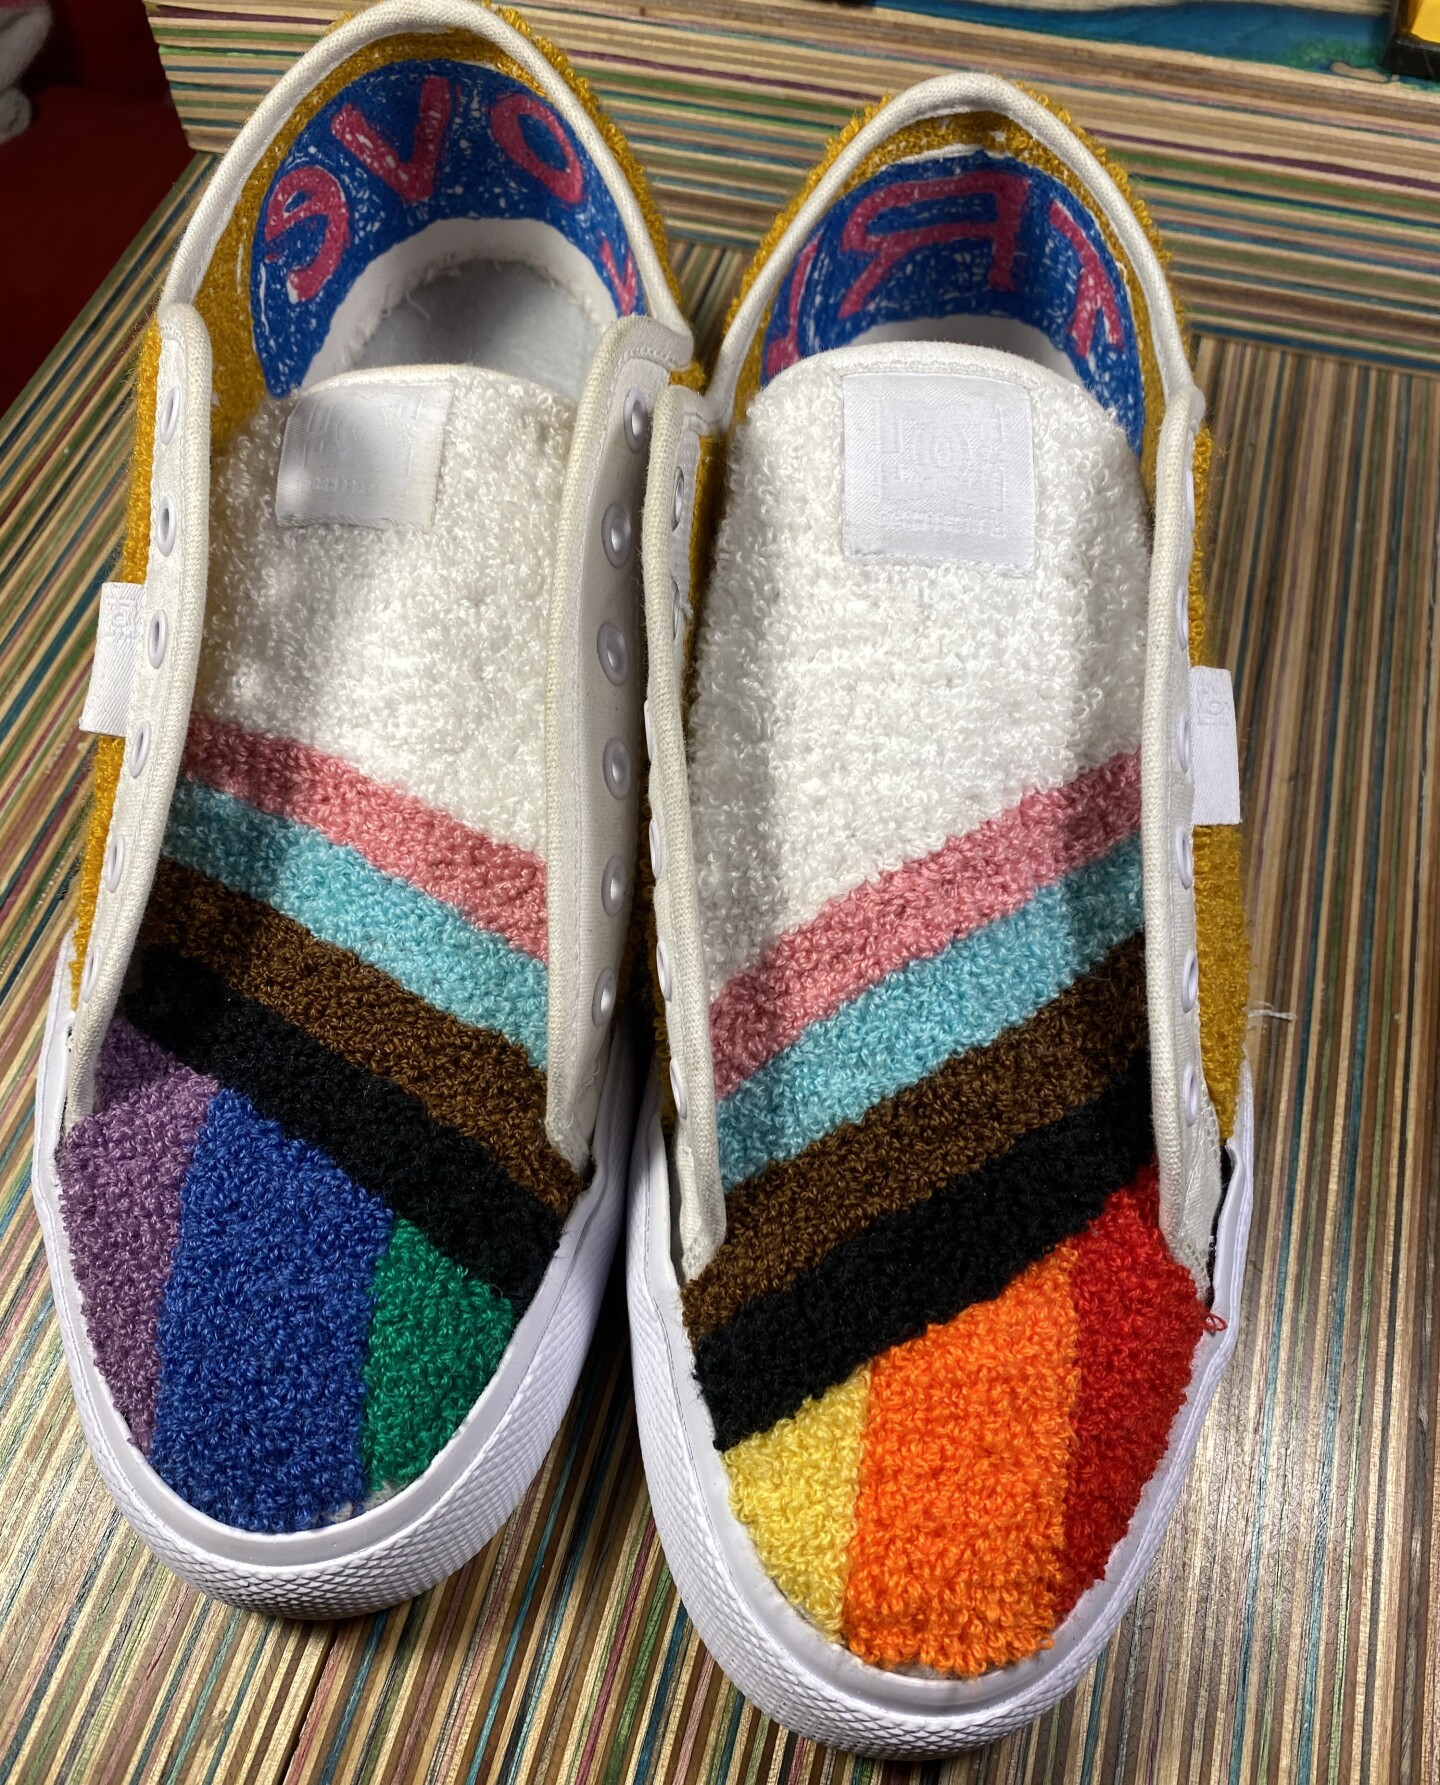 A pair of skater shoes chenille embroidered with the LGBTQ rainbow pride flag. The shoes are sitting on top of a multicolored striped surface.